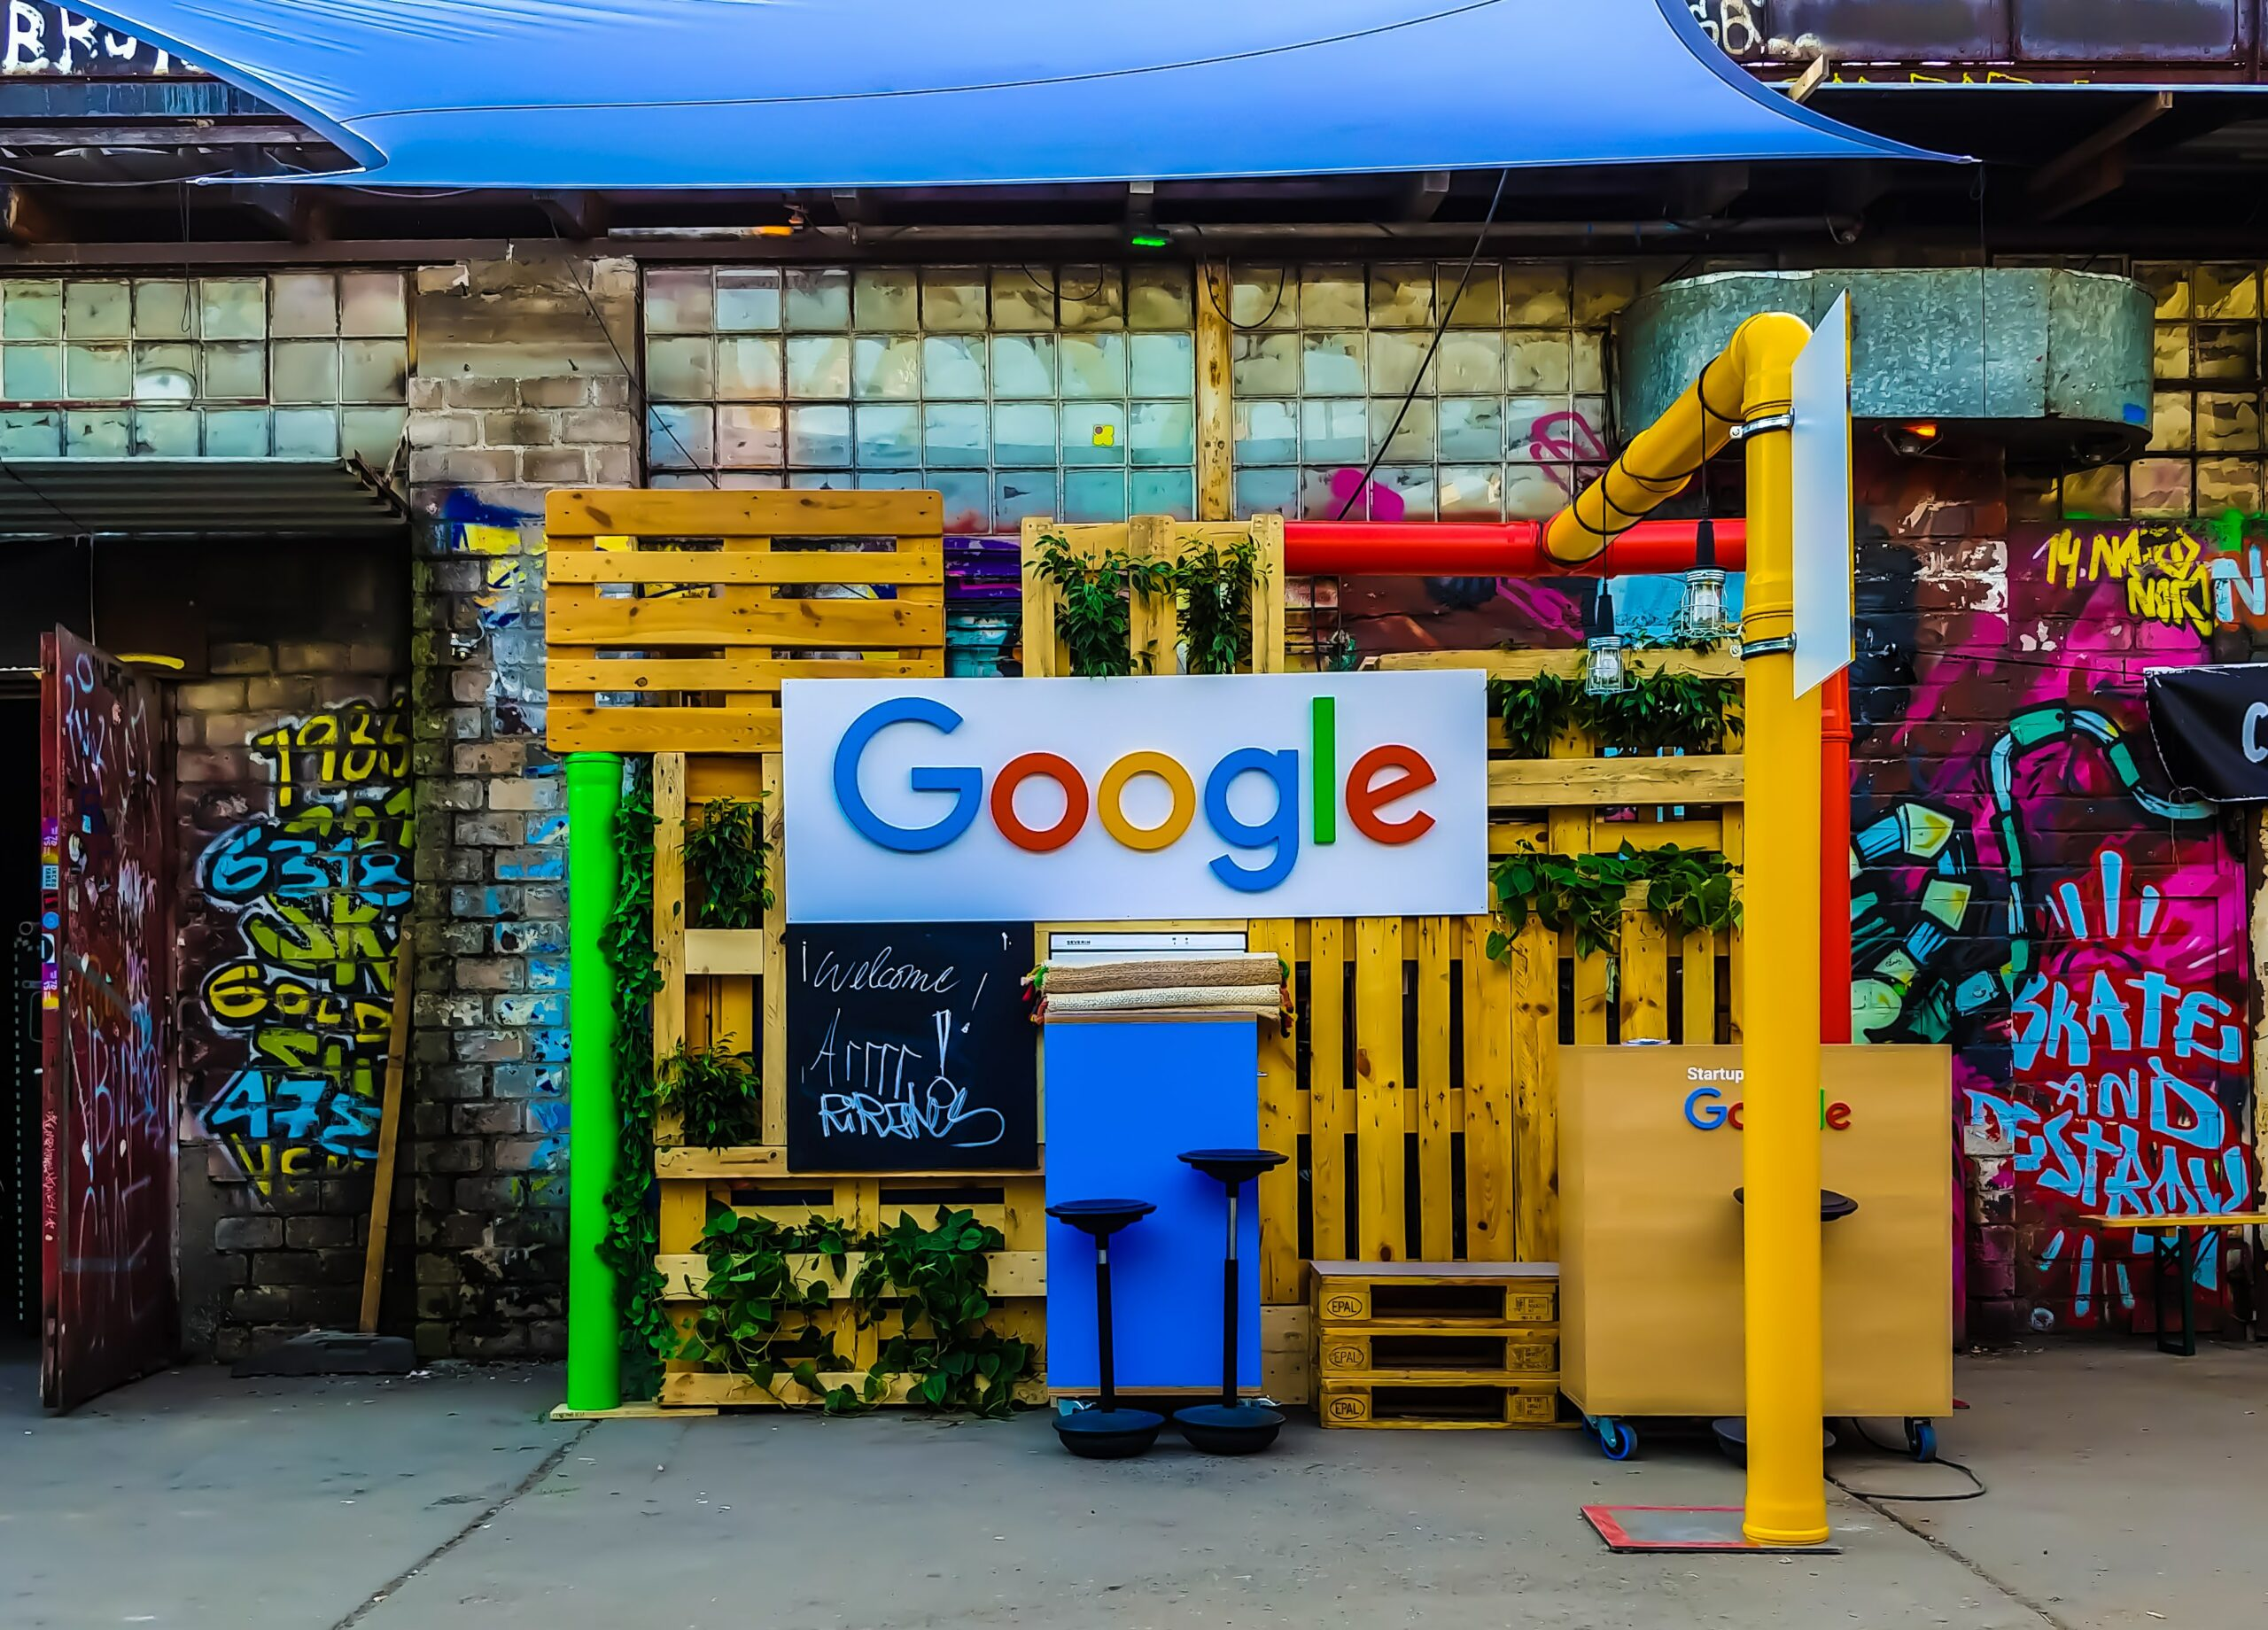 Google Logo in Street Pop Up With Graffiti and Pipes in the Background